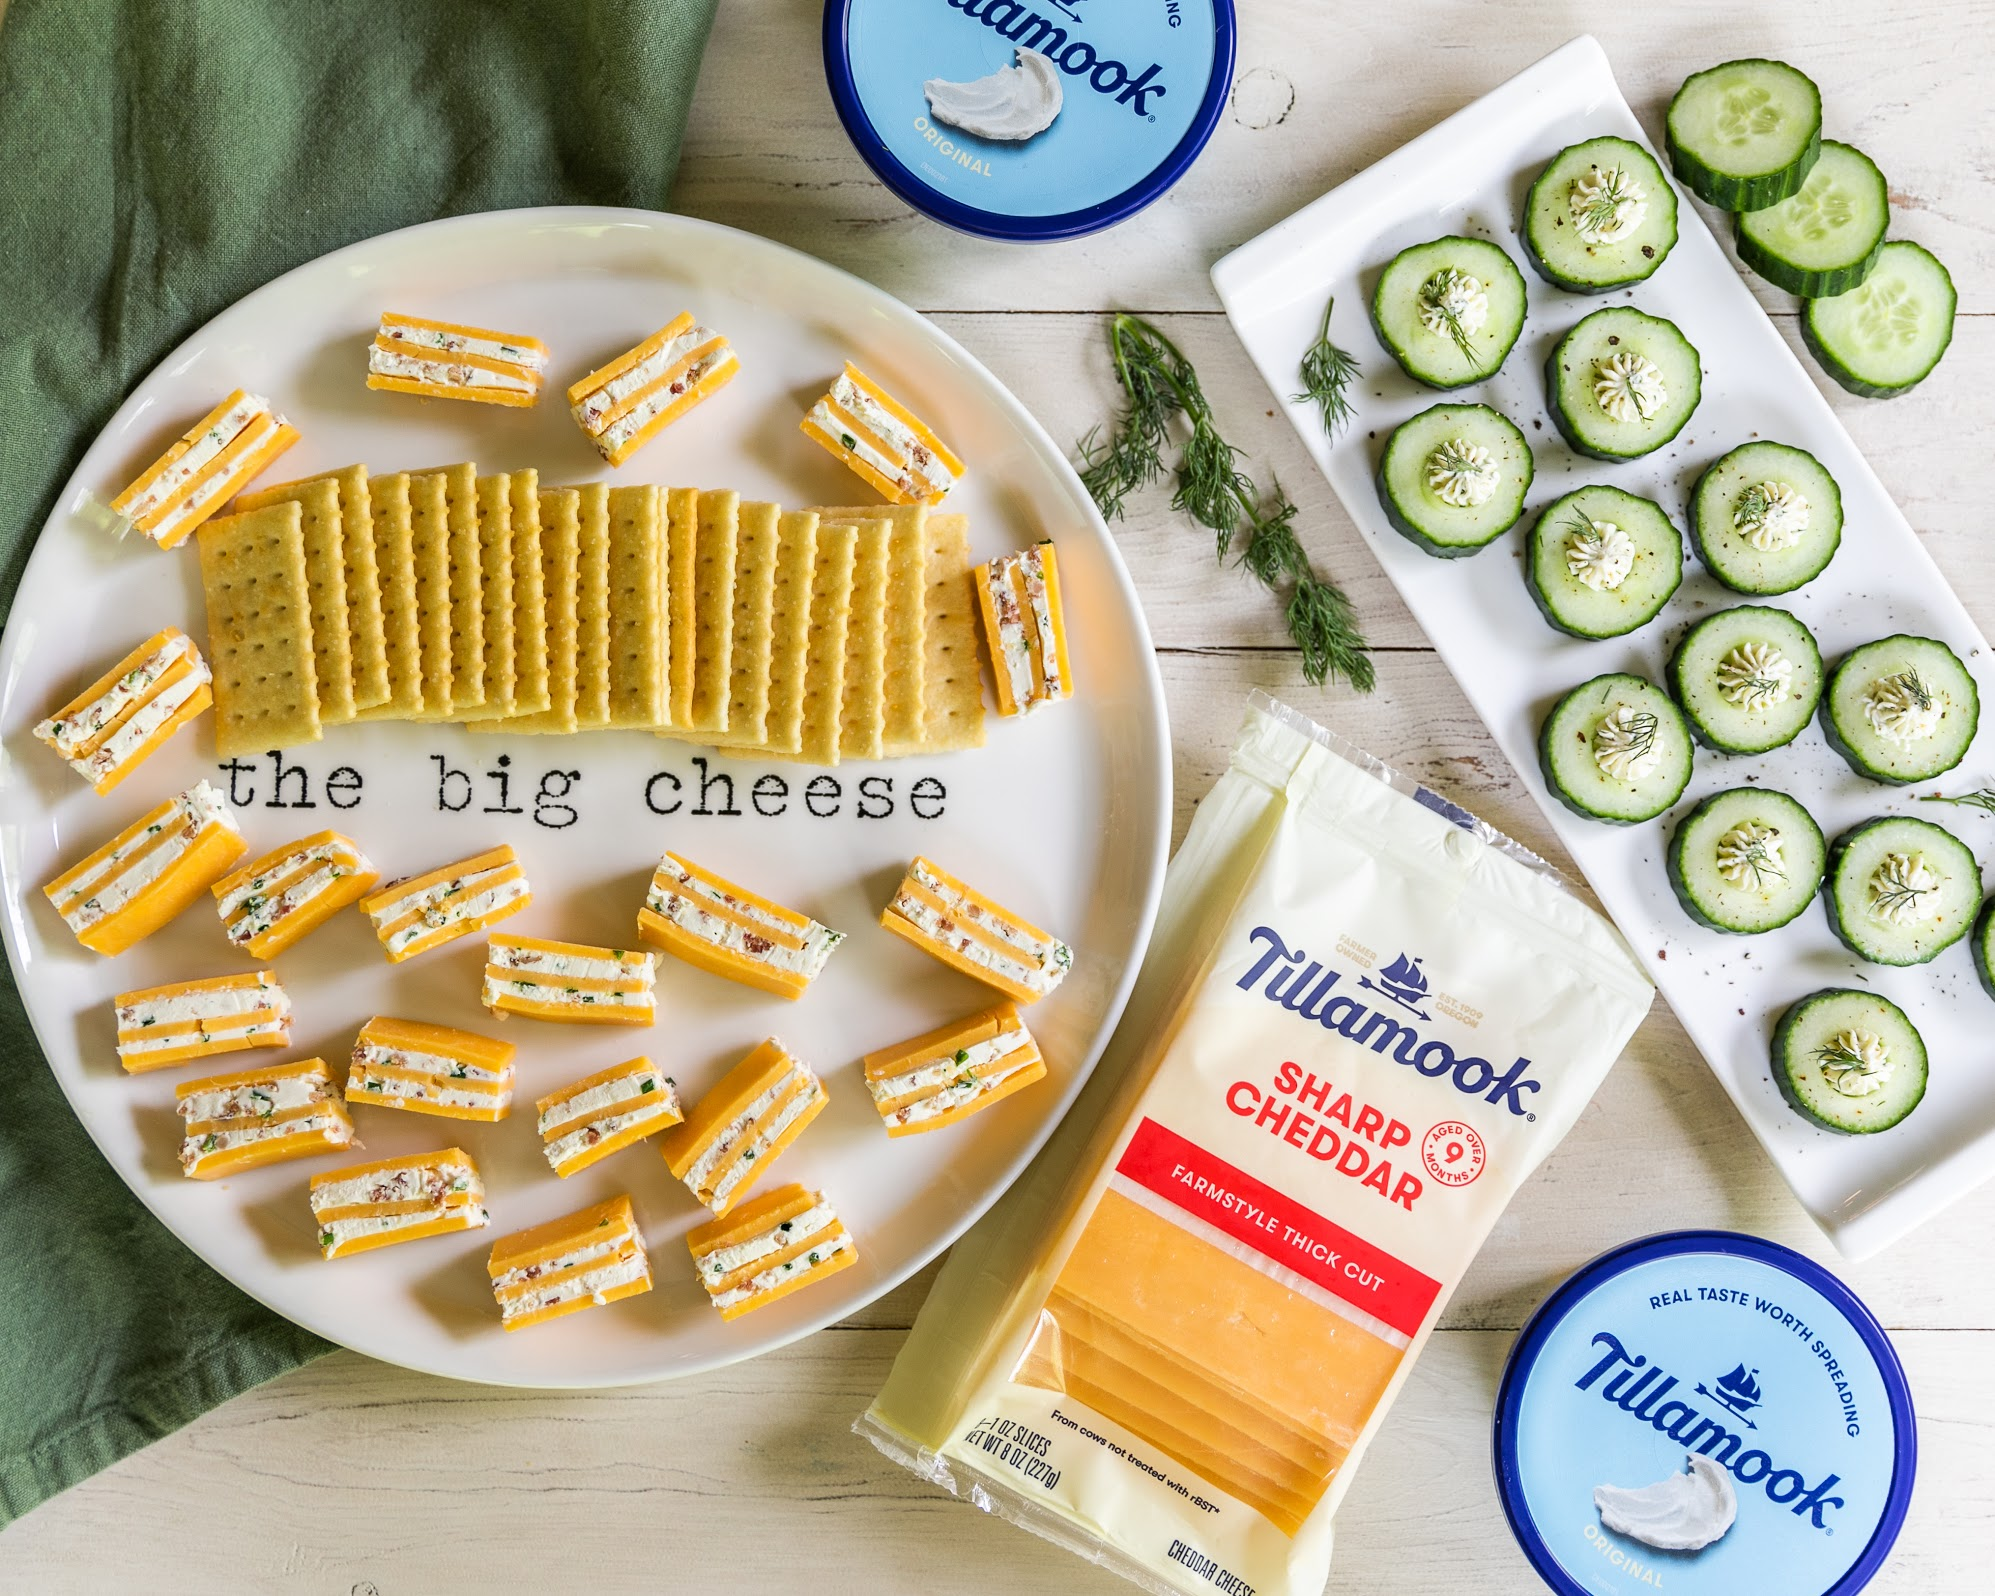 Summer Entertaining Made Easy With Tillamook - Save Now At Publix on I Heart Publix